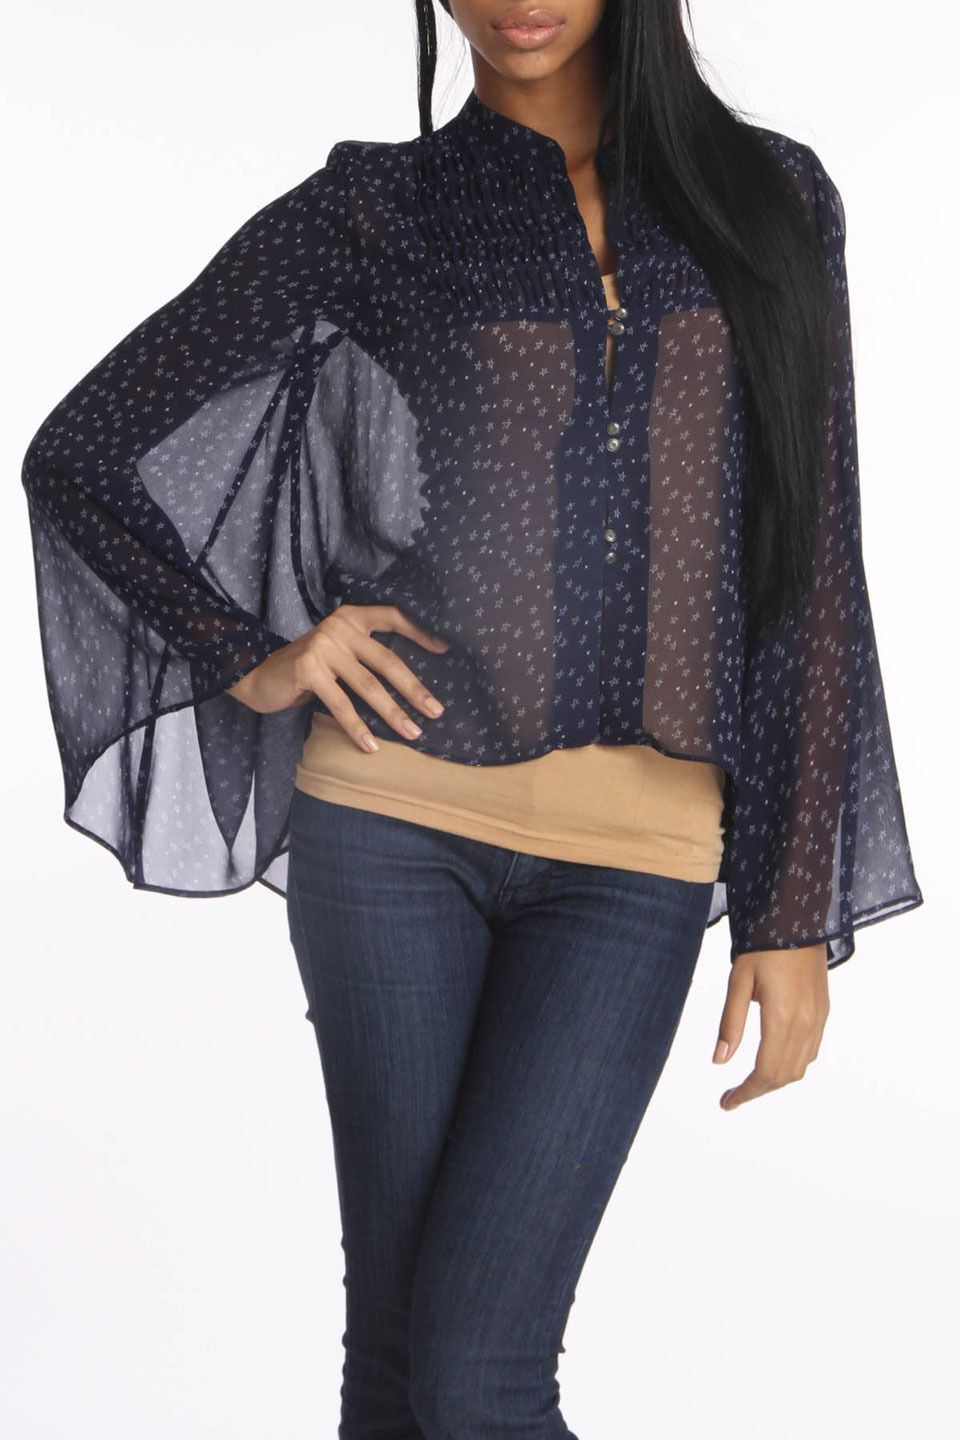 dv by dolce vita Cheche Top In Navy Star